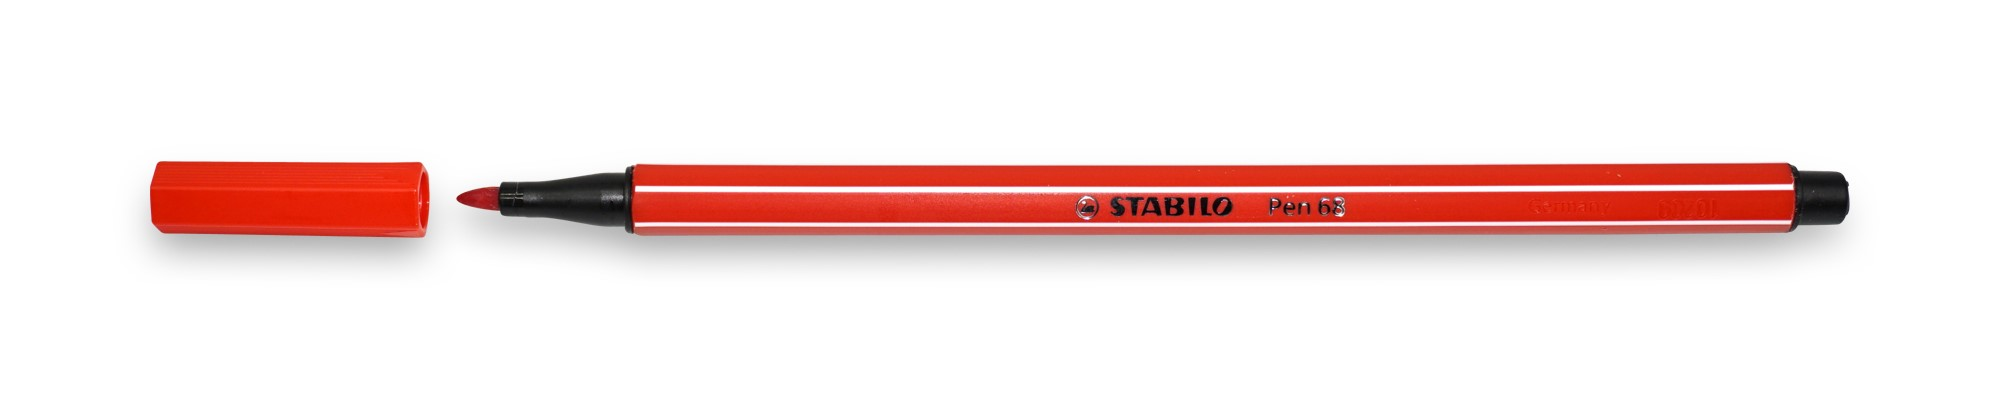 Stabilo Pen 68 Filzstift